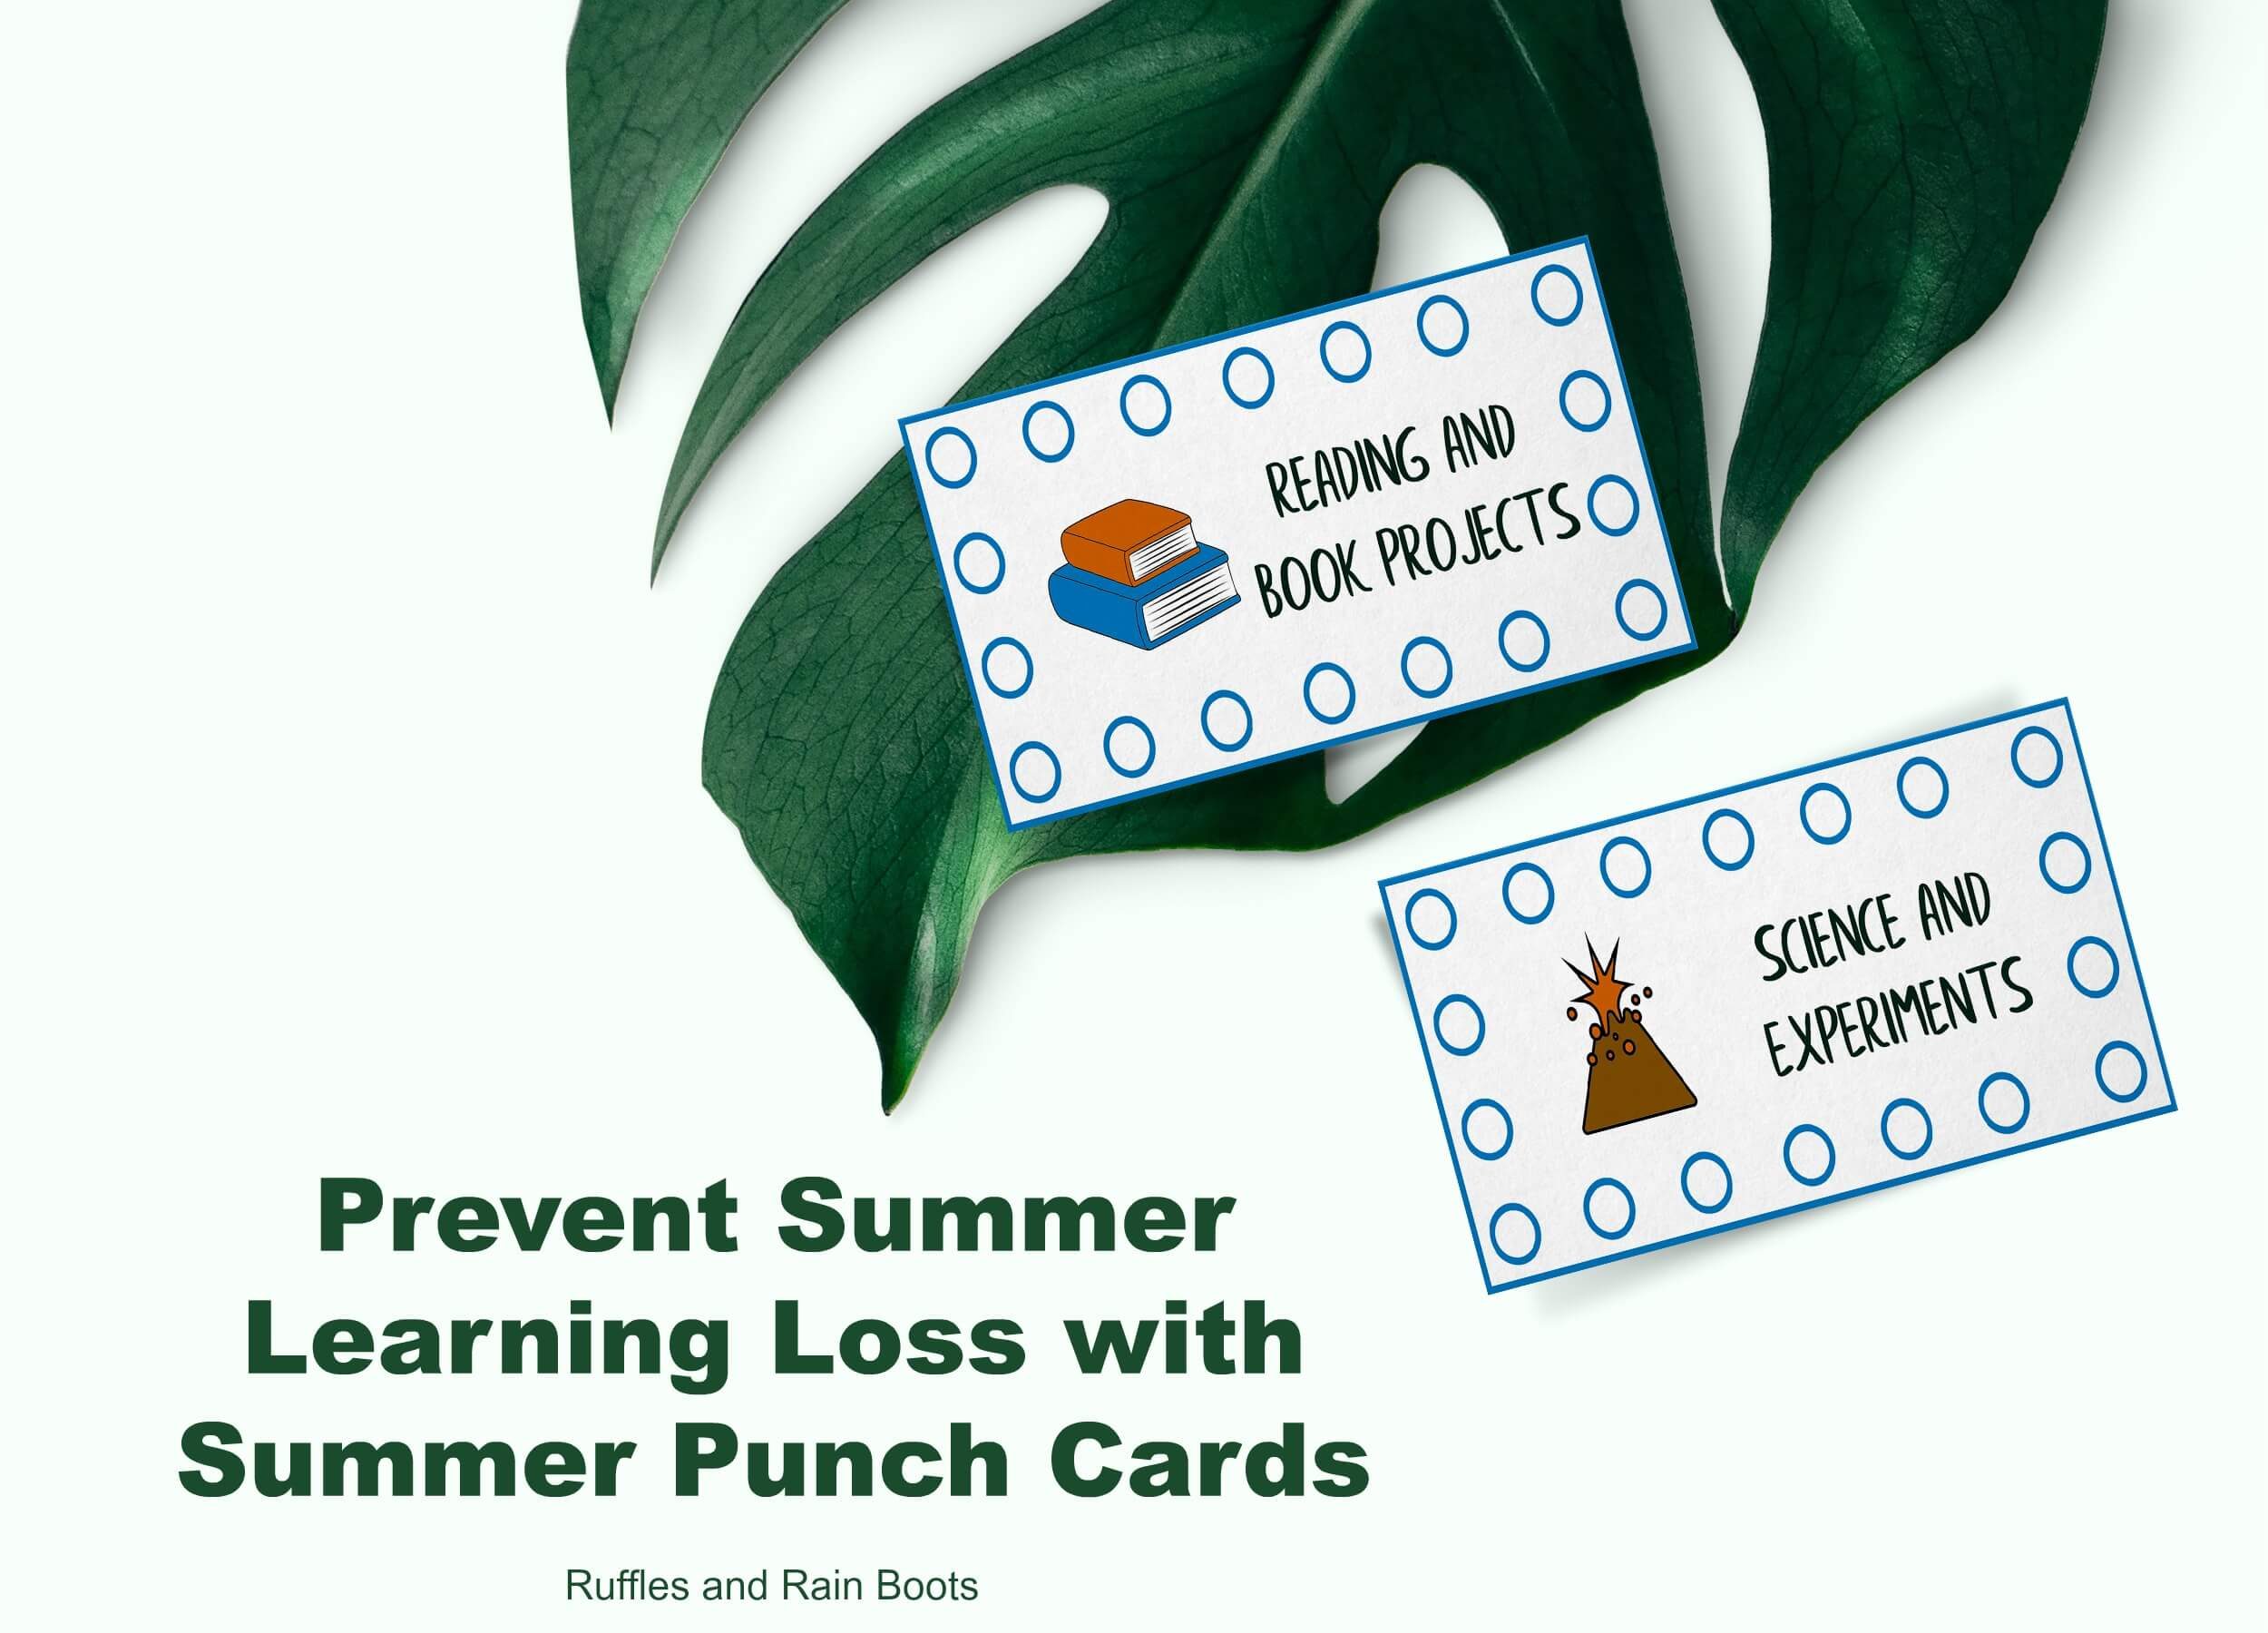 Summer Punch Cards for Kids to Prevent Summer Learning Loss